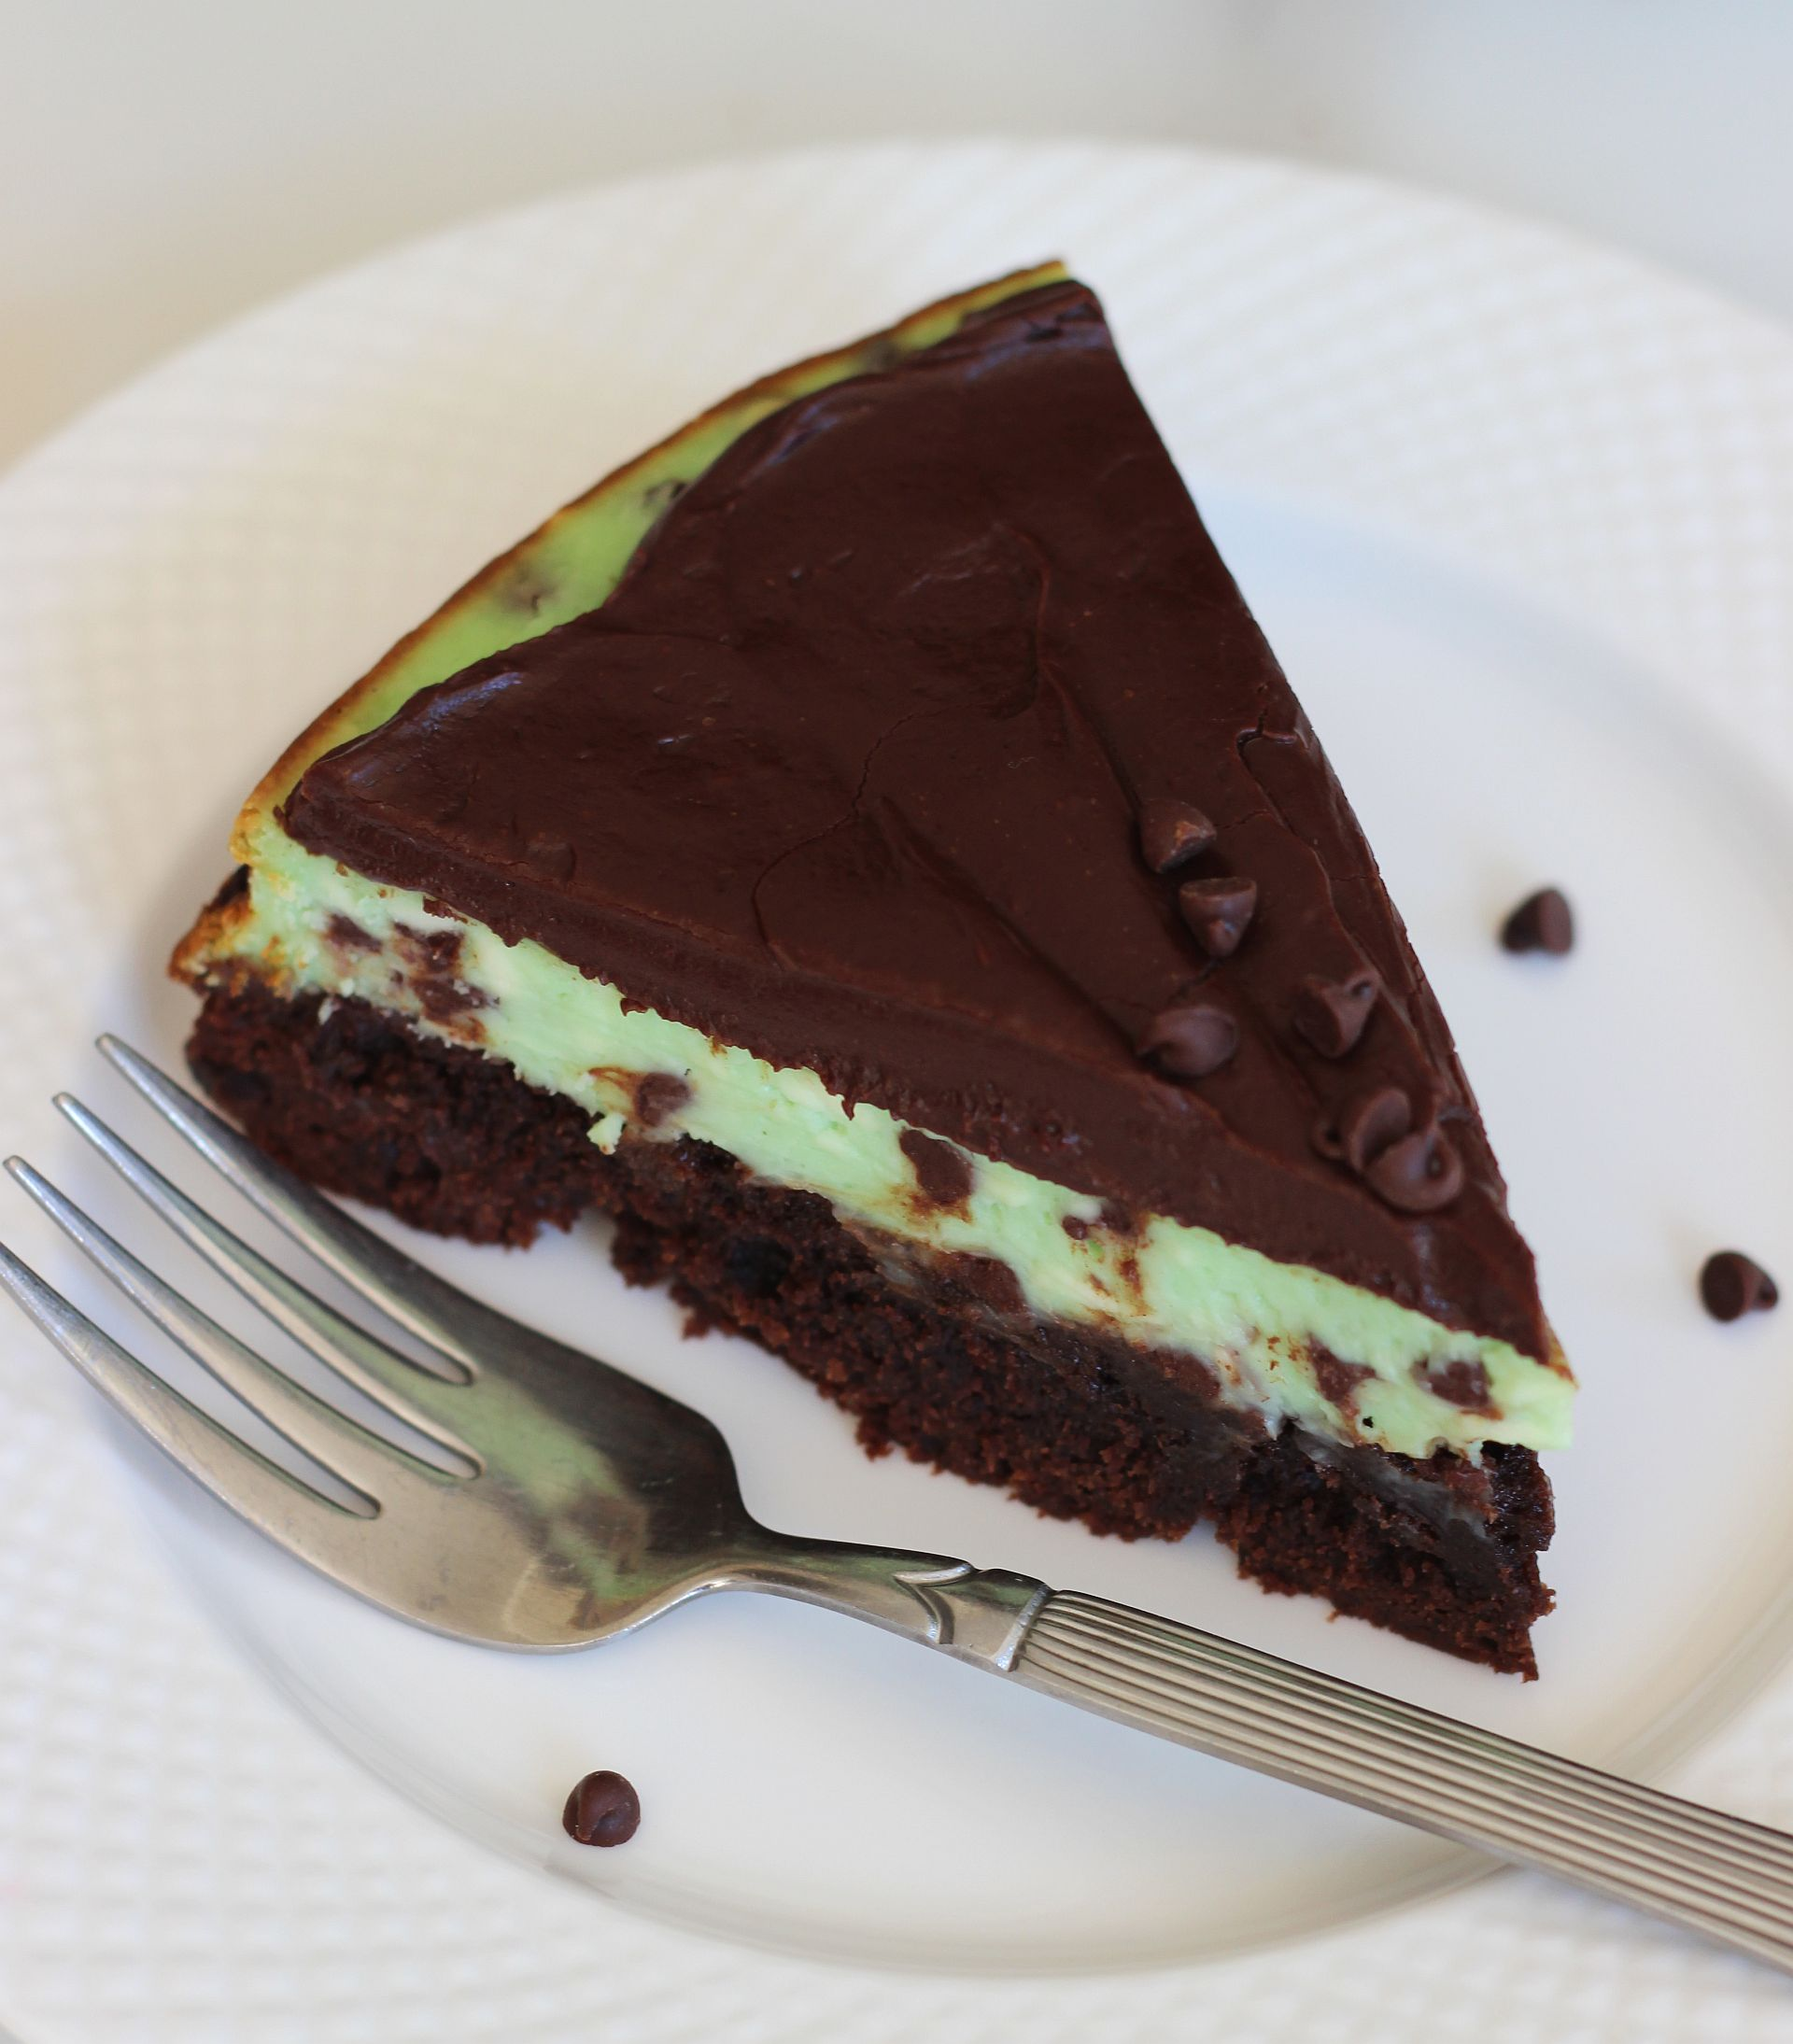 Mint Chocolate Chip Brownie Cheesecake. Sell My Diamonds For Cash Security Lock Door. The Best Orthopedic Surgeon In The World. Conference Room Scheduling Software. Online Summer Classes For High School Students. Physical Therapy Assistant Schools In Indiana. Owner Insurance Company Naval Medical Command. West Viriginia University Painting Raleigh Nc. Acadian Family Dentistry Dental In San Antonio